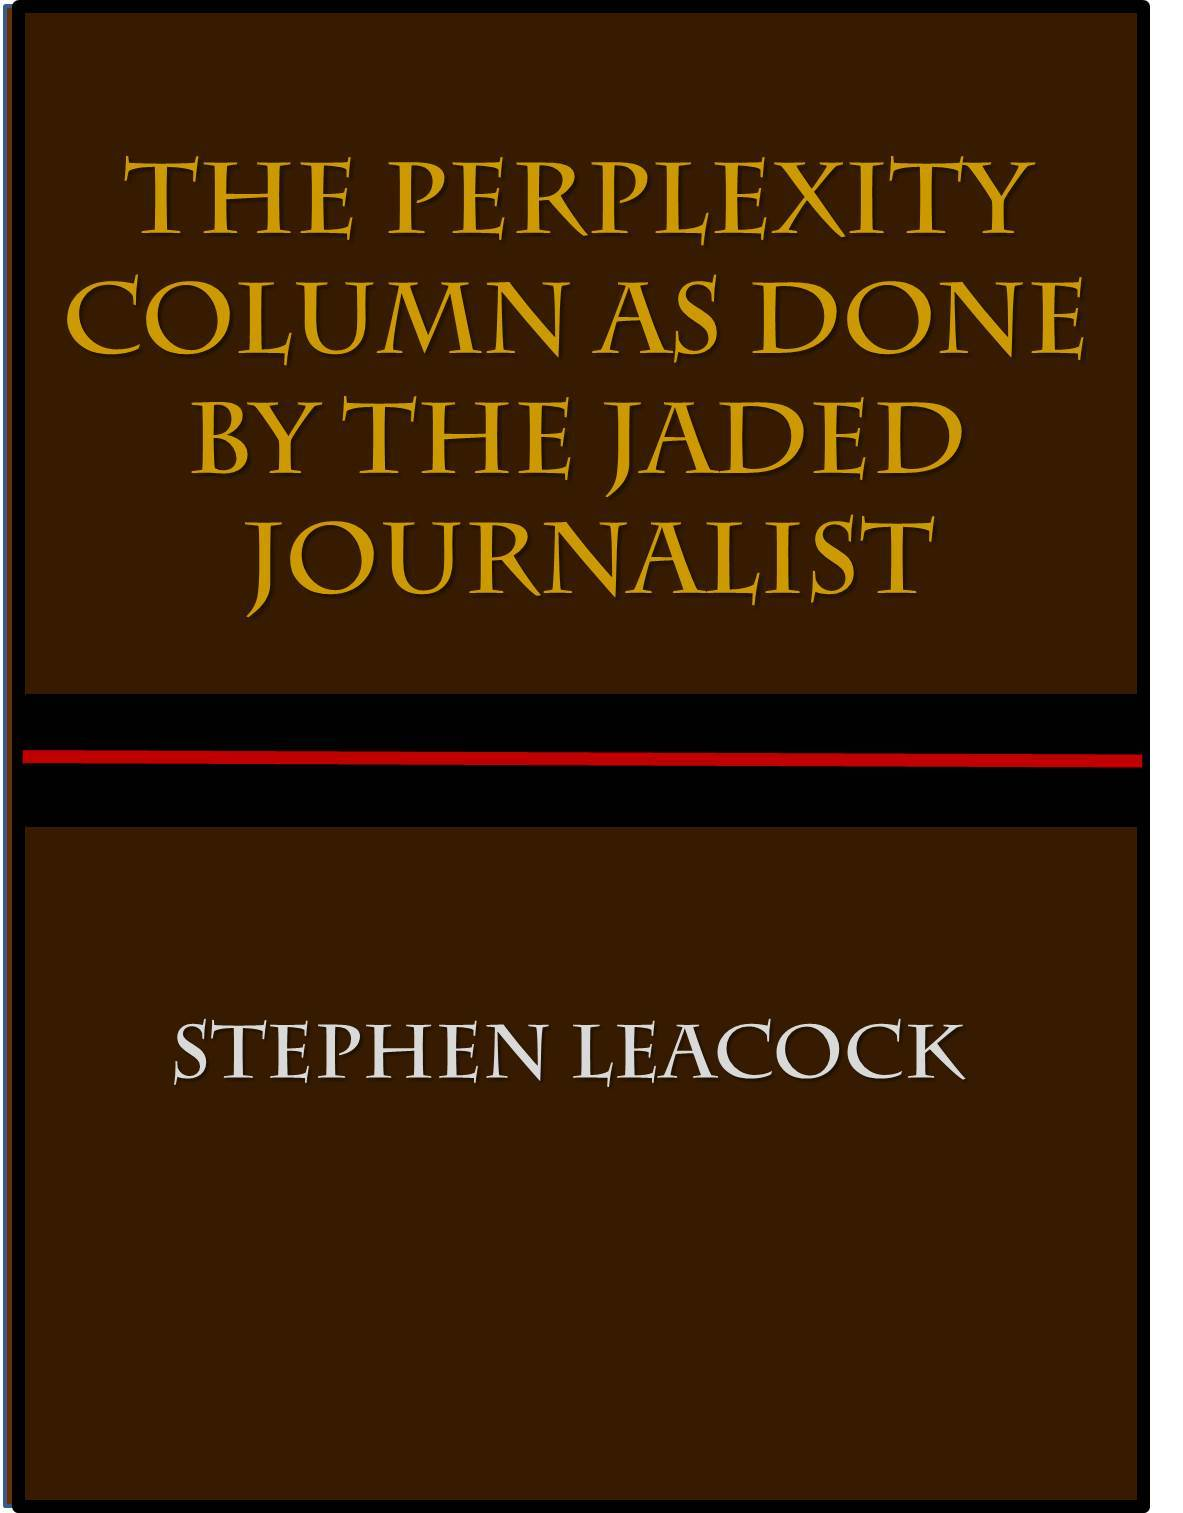 The Perplexity Column as Done  by  the Jaded Journalist by Stephen Leacock